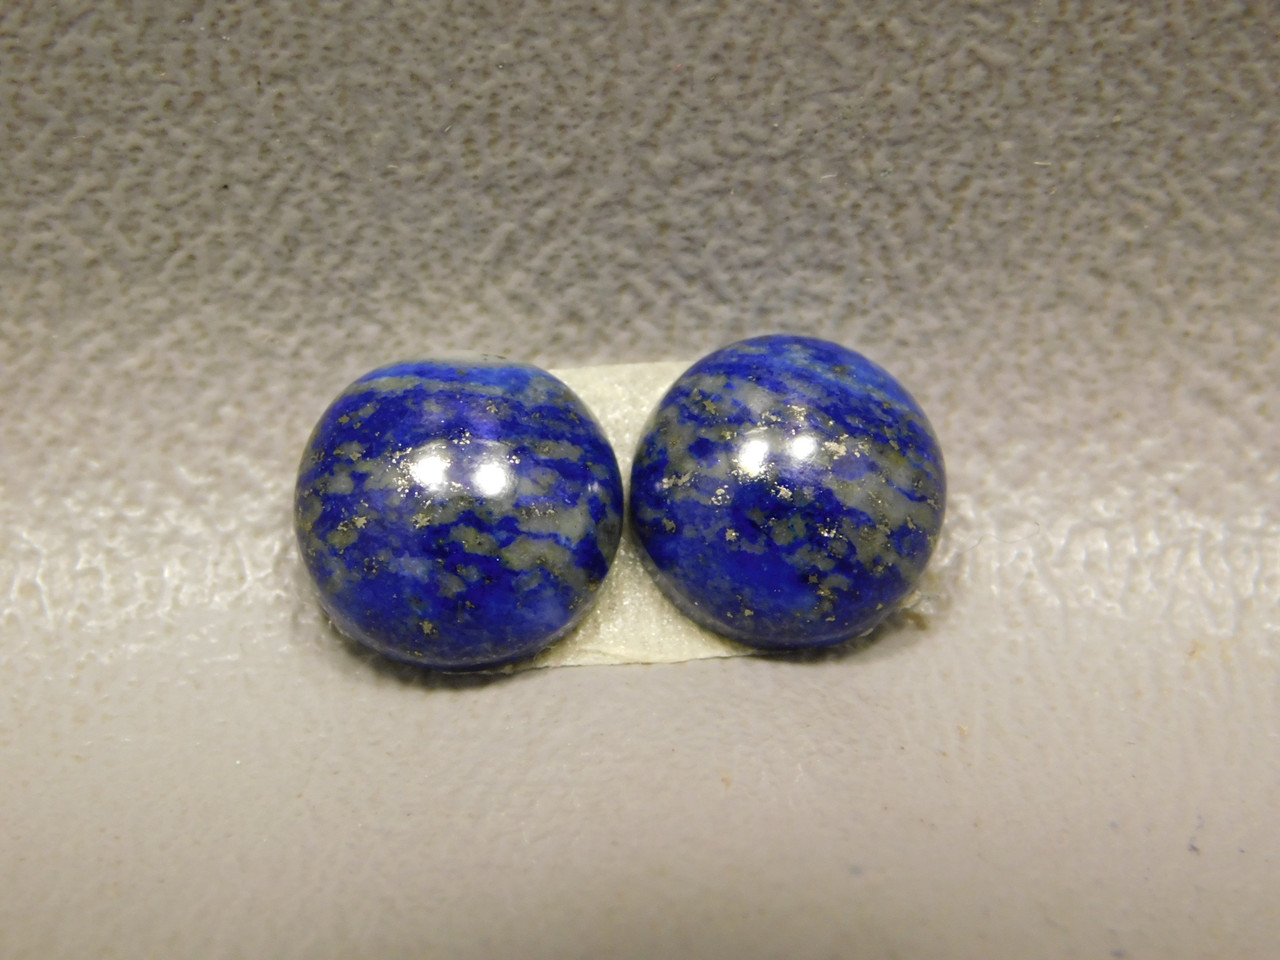 Cabochons Blue Stone Lapis Small 9 mm Round Matched Pairs #16